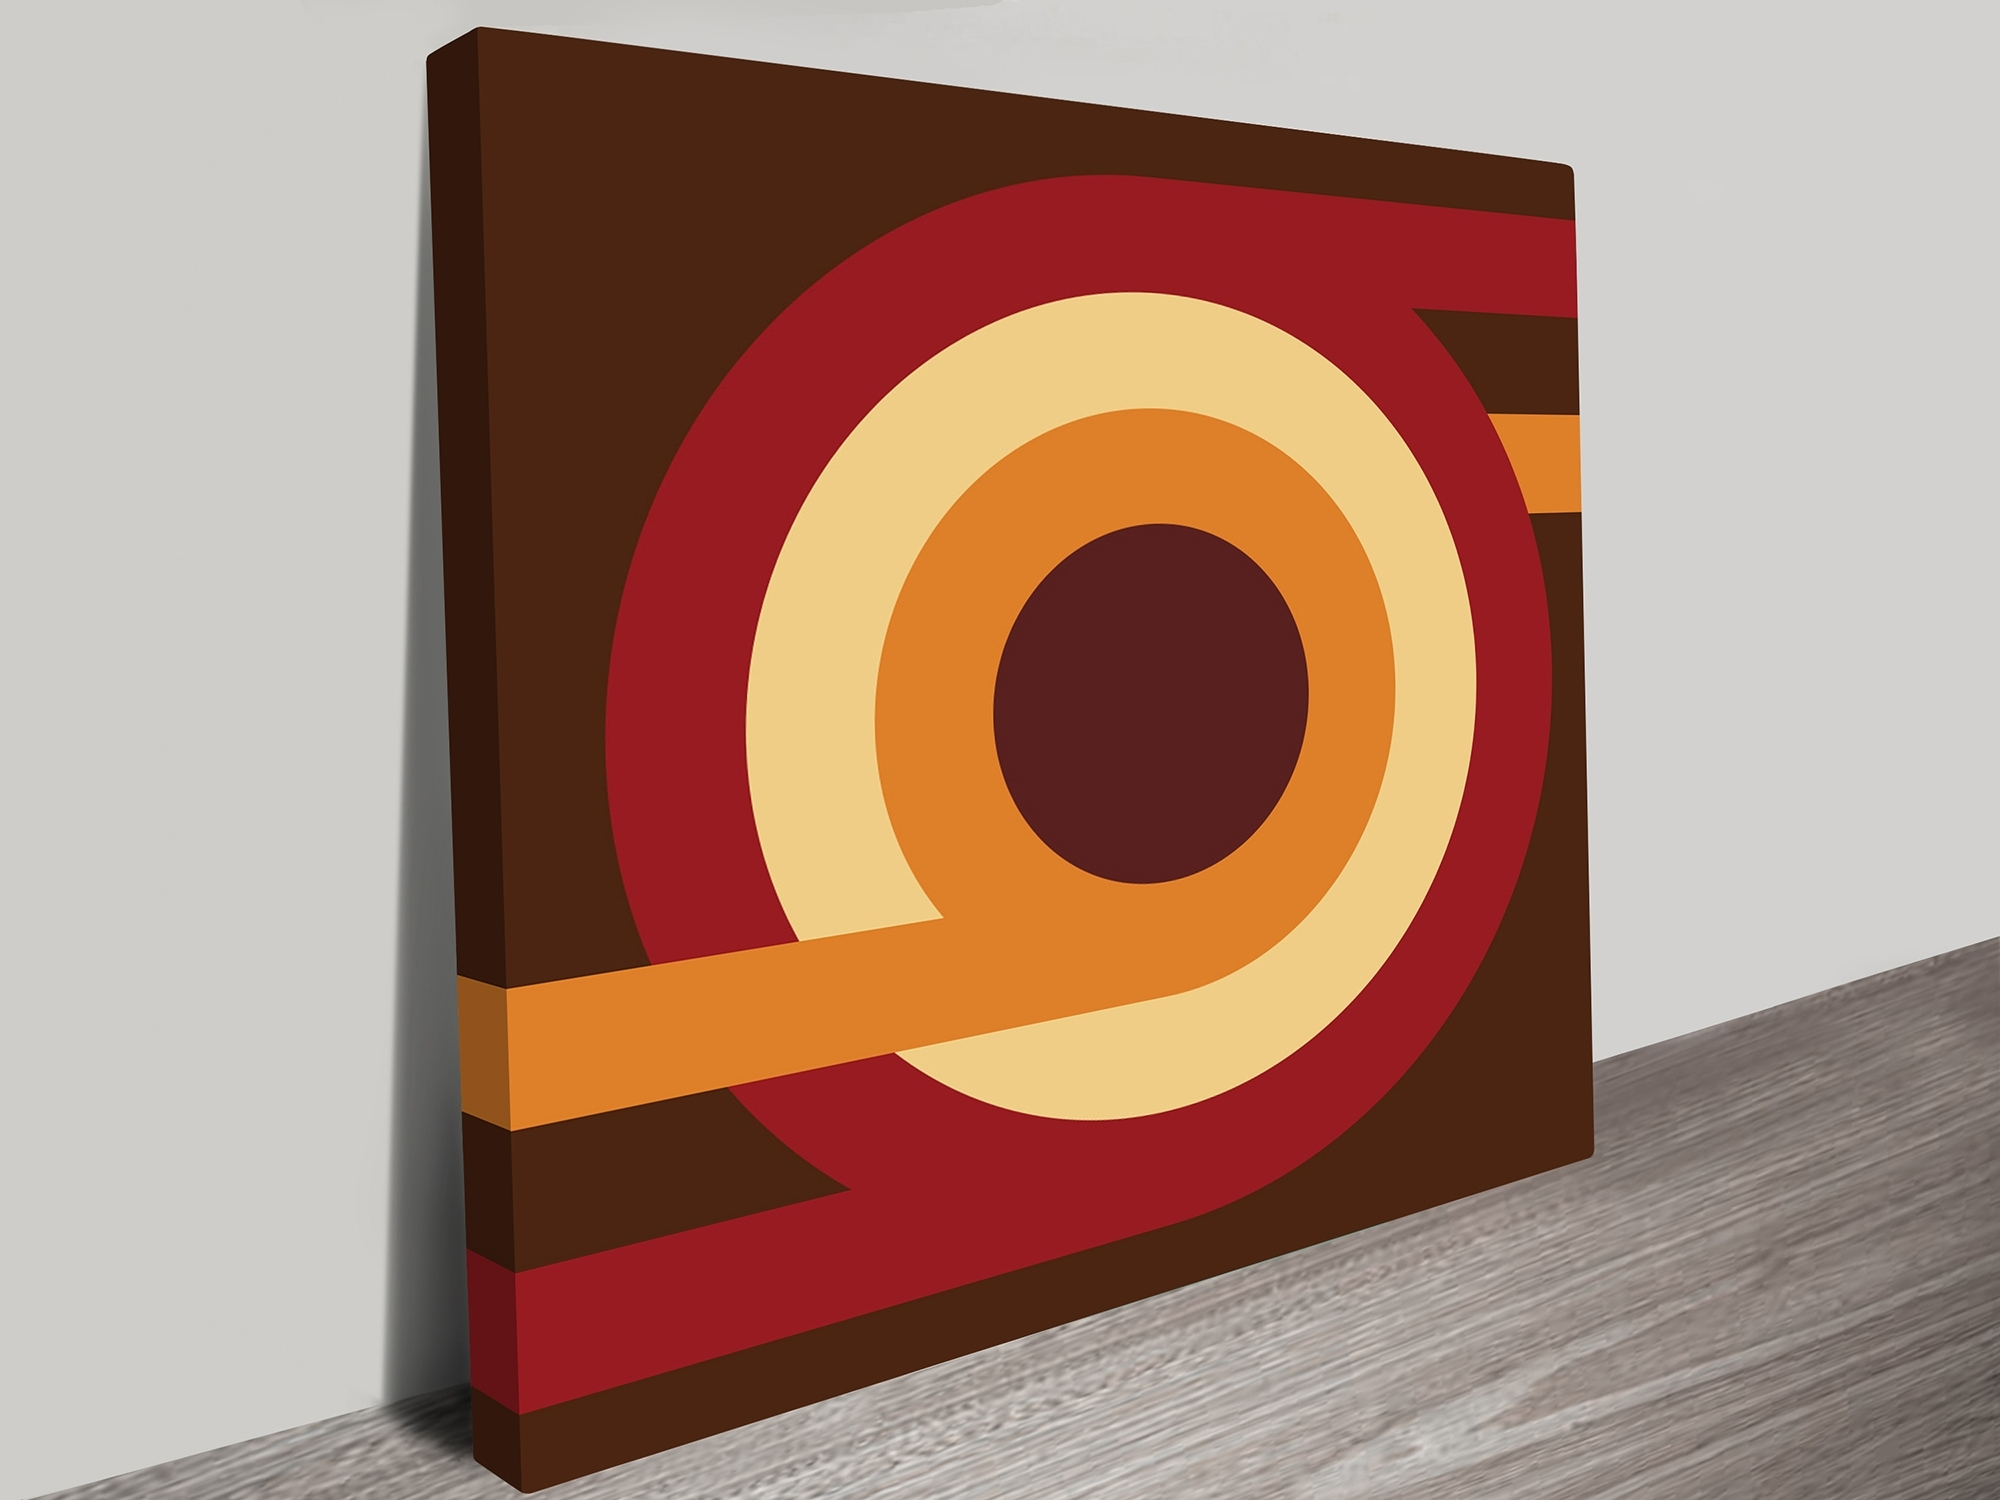 Geometric Wall Art Pertaining To Newest Geometric Wall Art On Canvas Adelaide Australia (View 17 of 20)